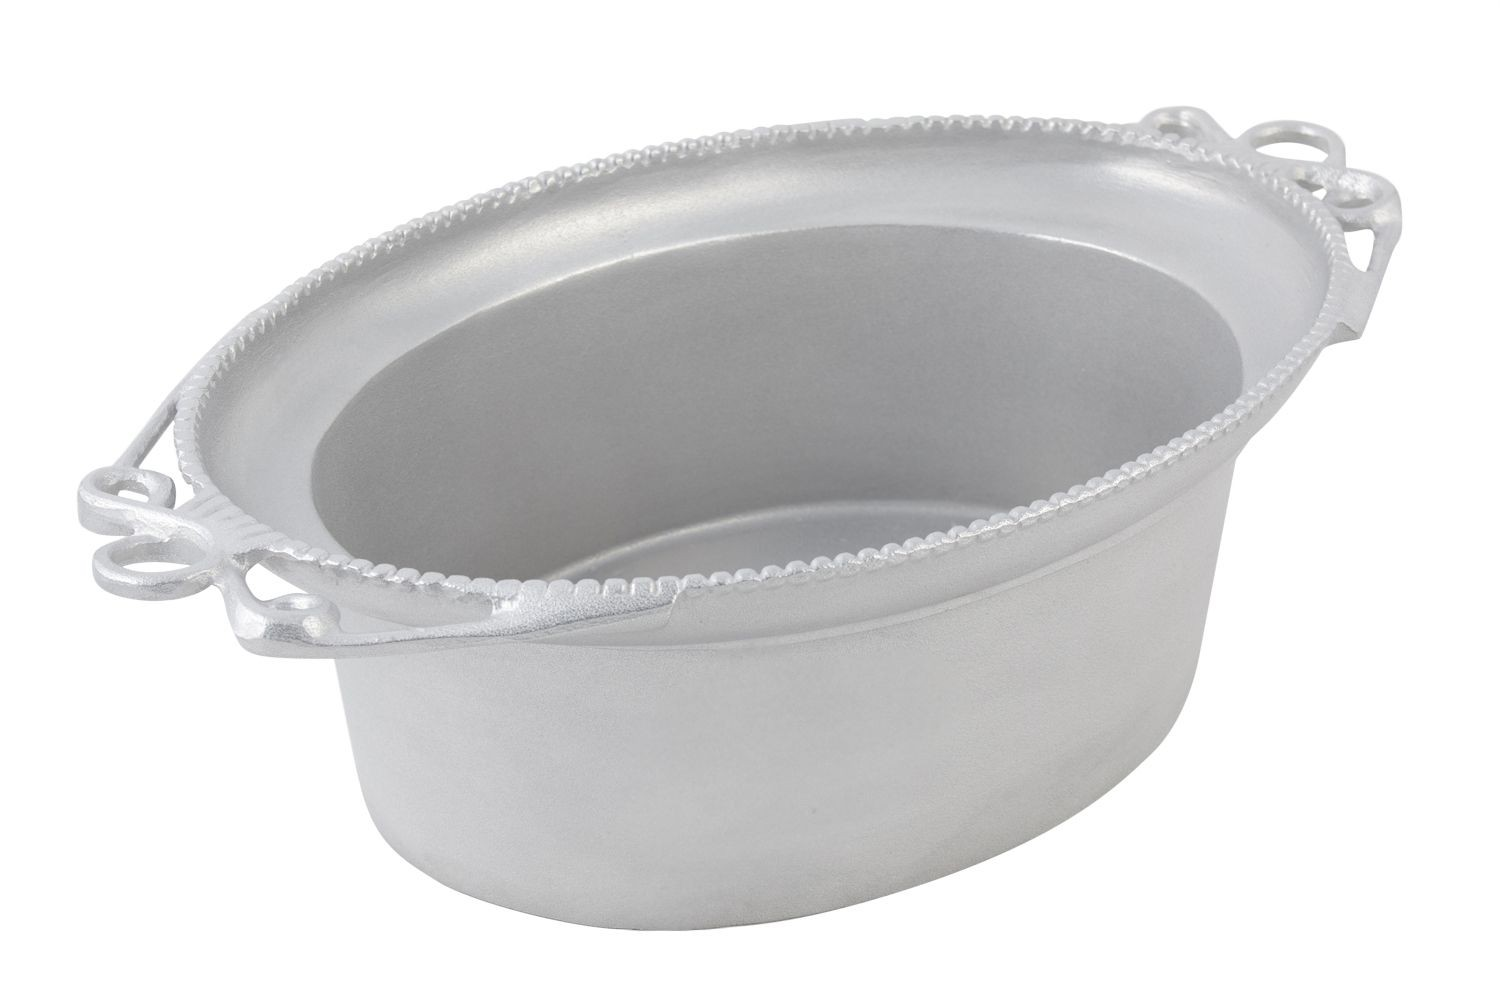 Bon Chef 2103P Bolero Serving Bowl, Pewter Glo 11 Qt.